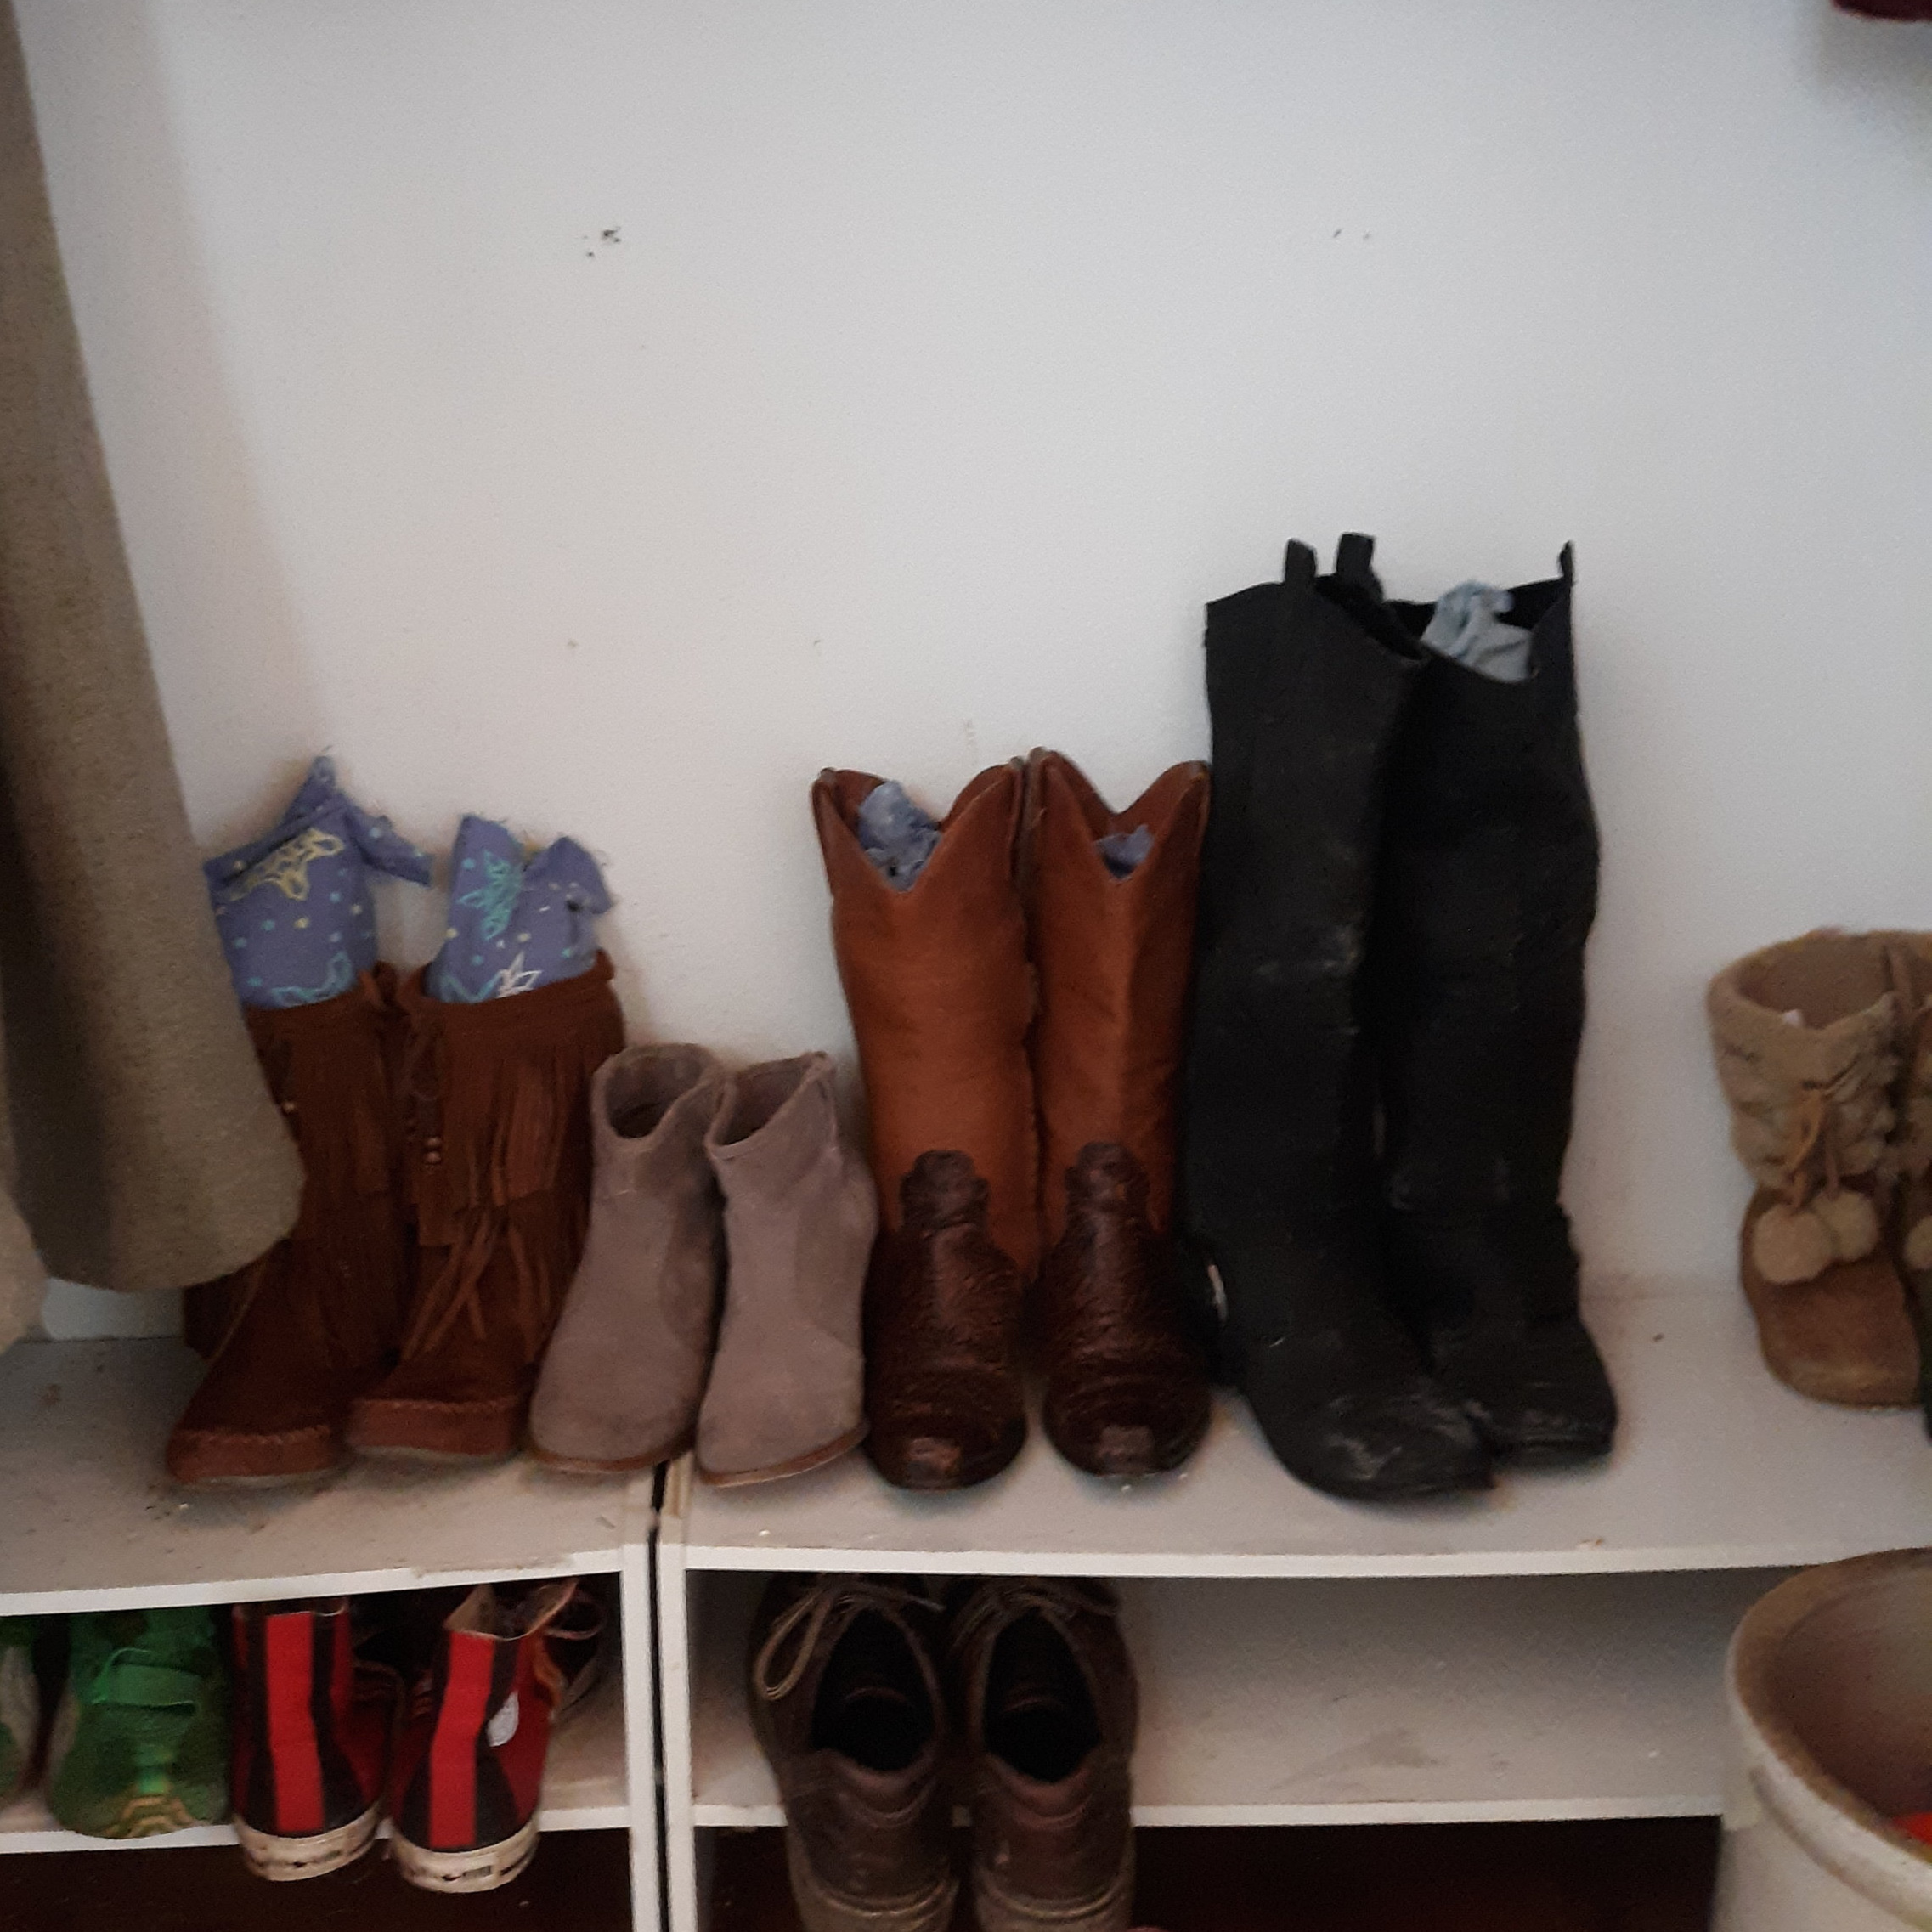 You can see the my old worn-out pajamas peeking out of the top of these boots to help them stand up.